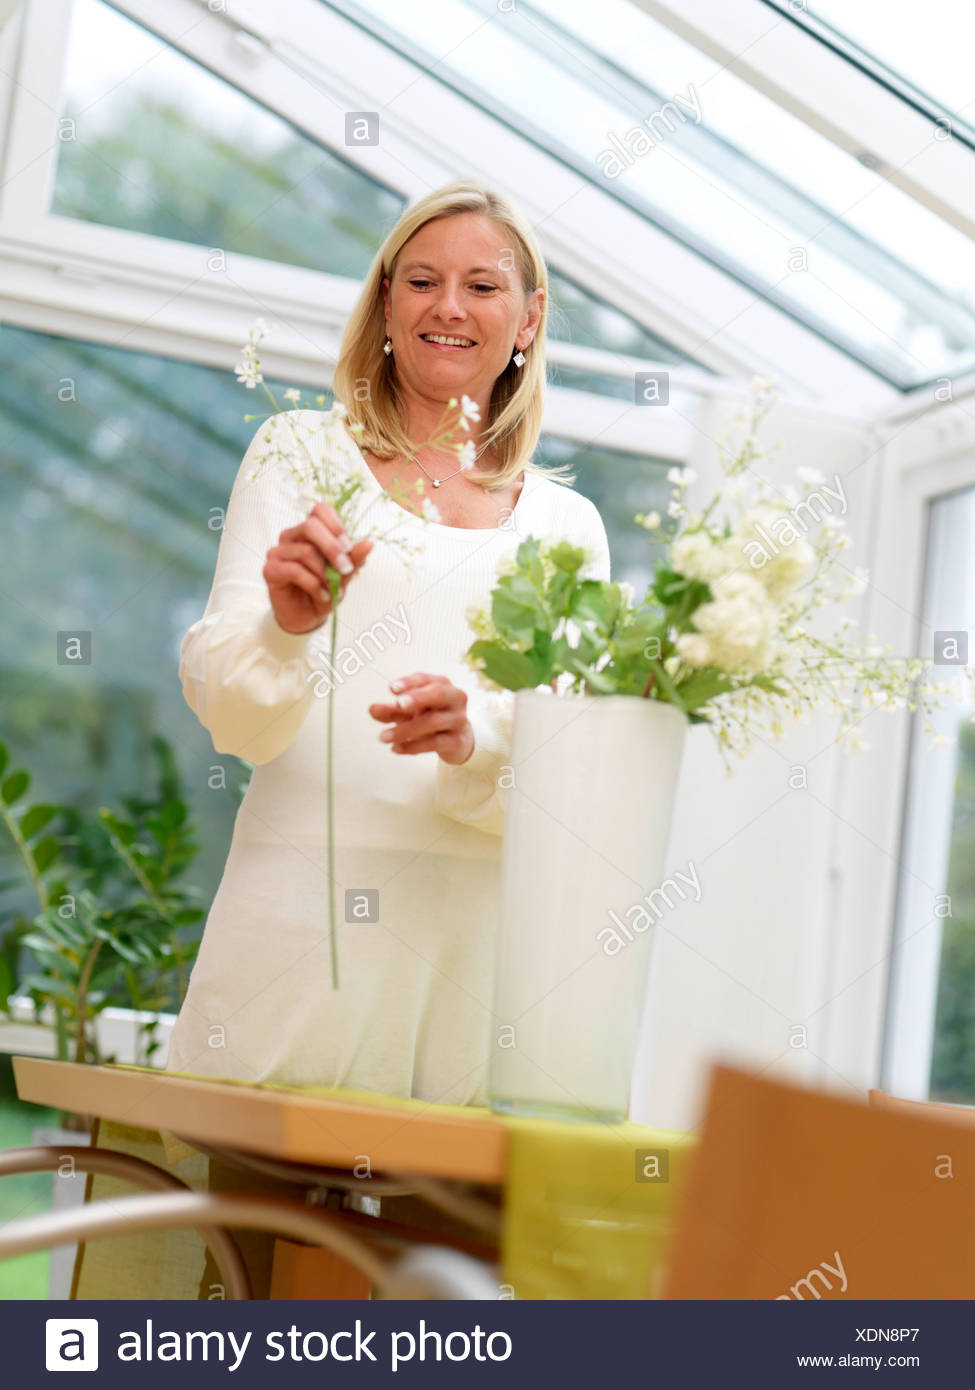 Woman arranging flowers in vase - Stock Image